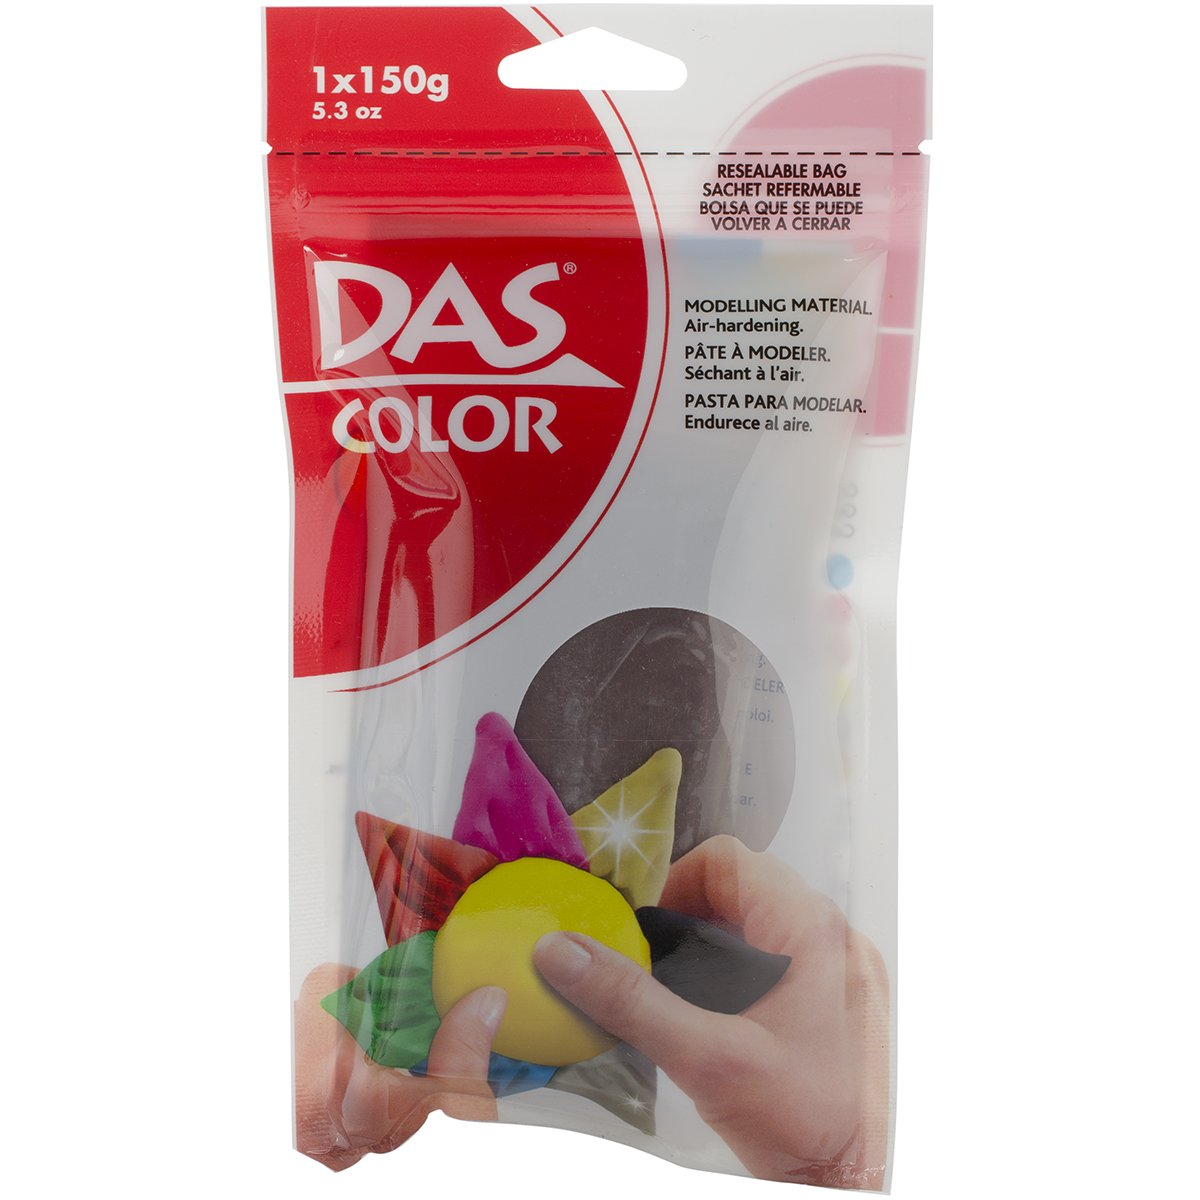 Das Color Modeling Clay - 1 Pack - Brown (dix-00397)